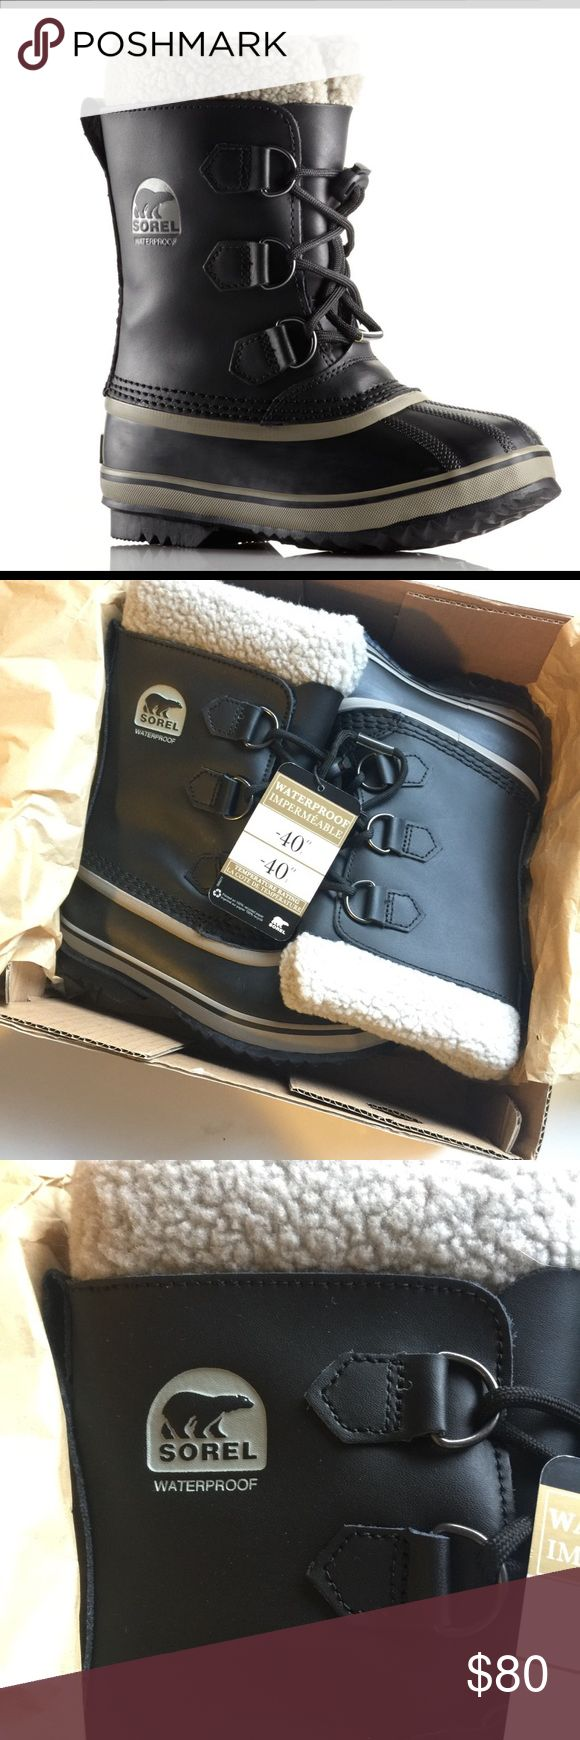 Sorel Snow Boots Heavy to ship brand new in box water proof best snow boots ever for your little man #sorel Sorel Shoes Rain & Snow Boots